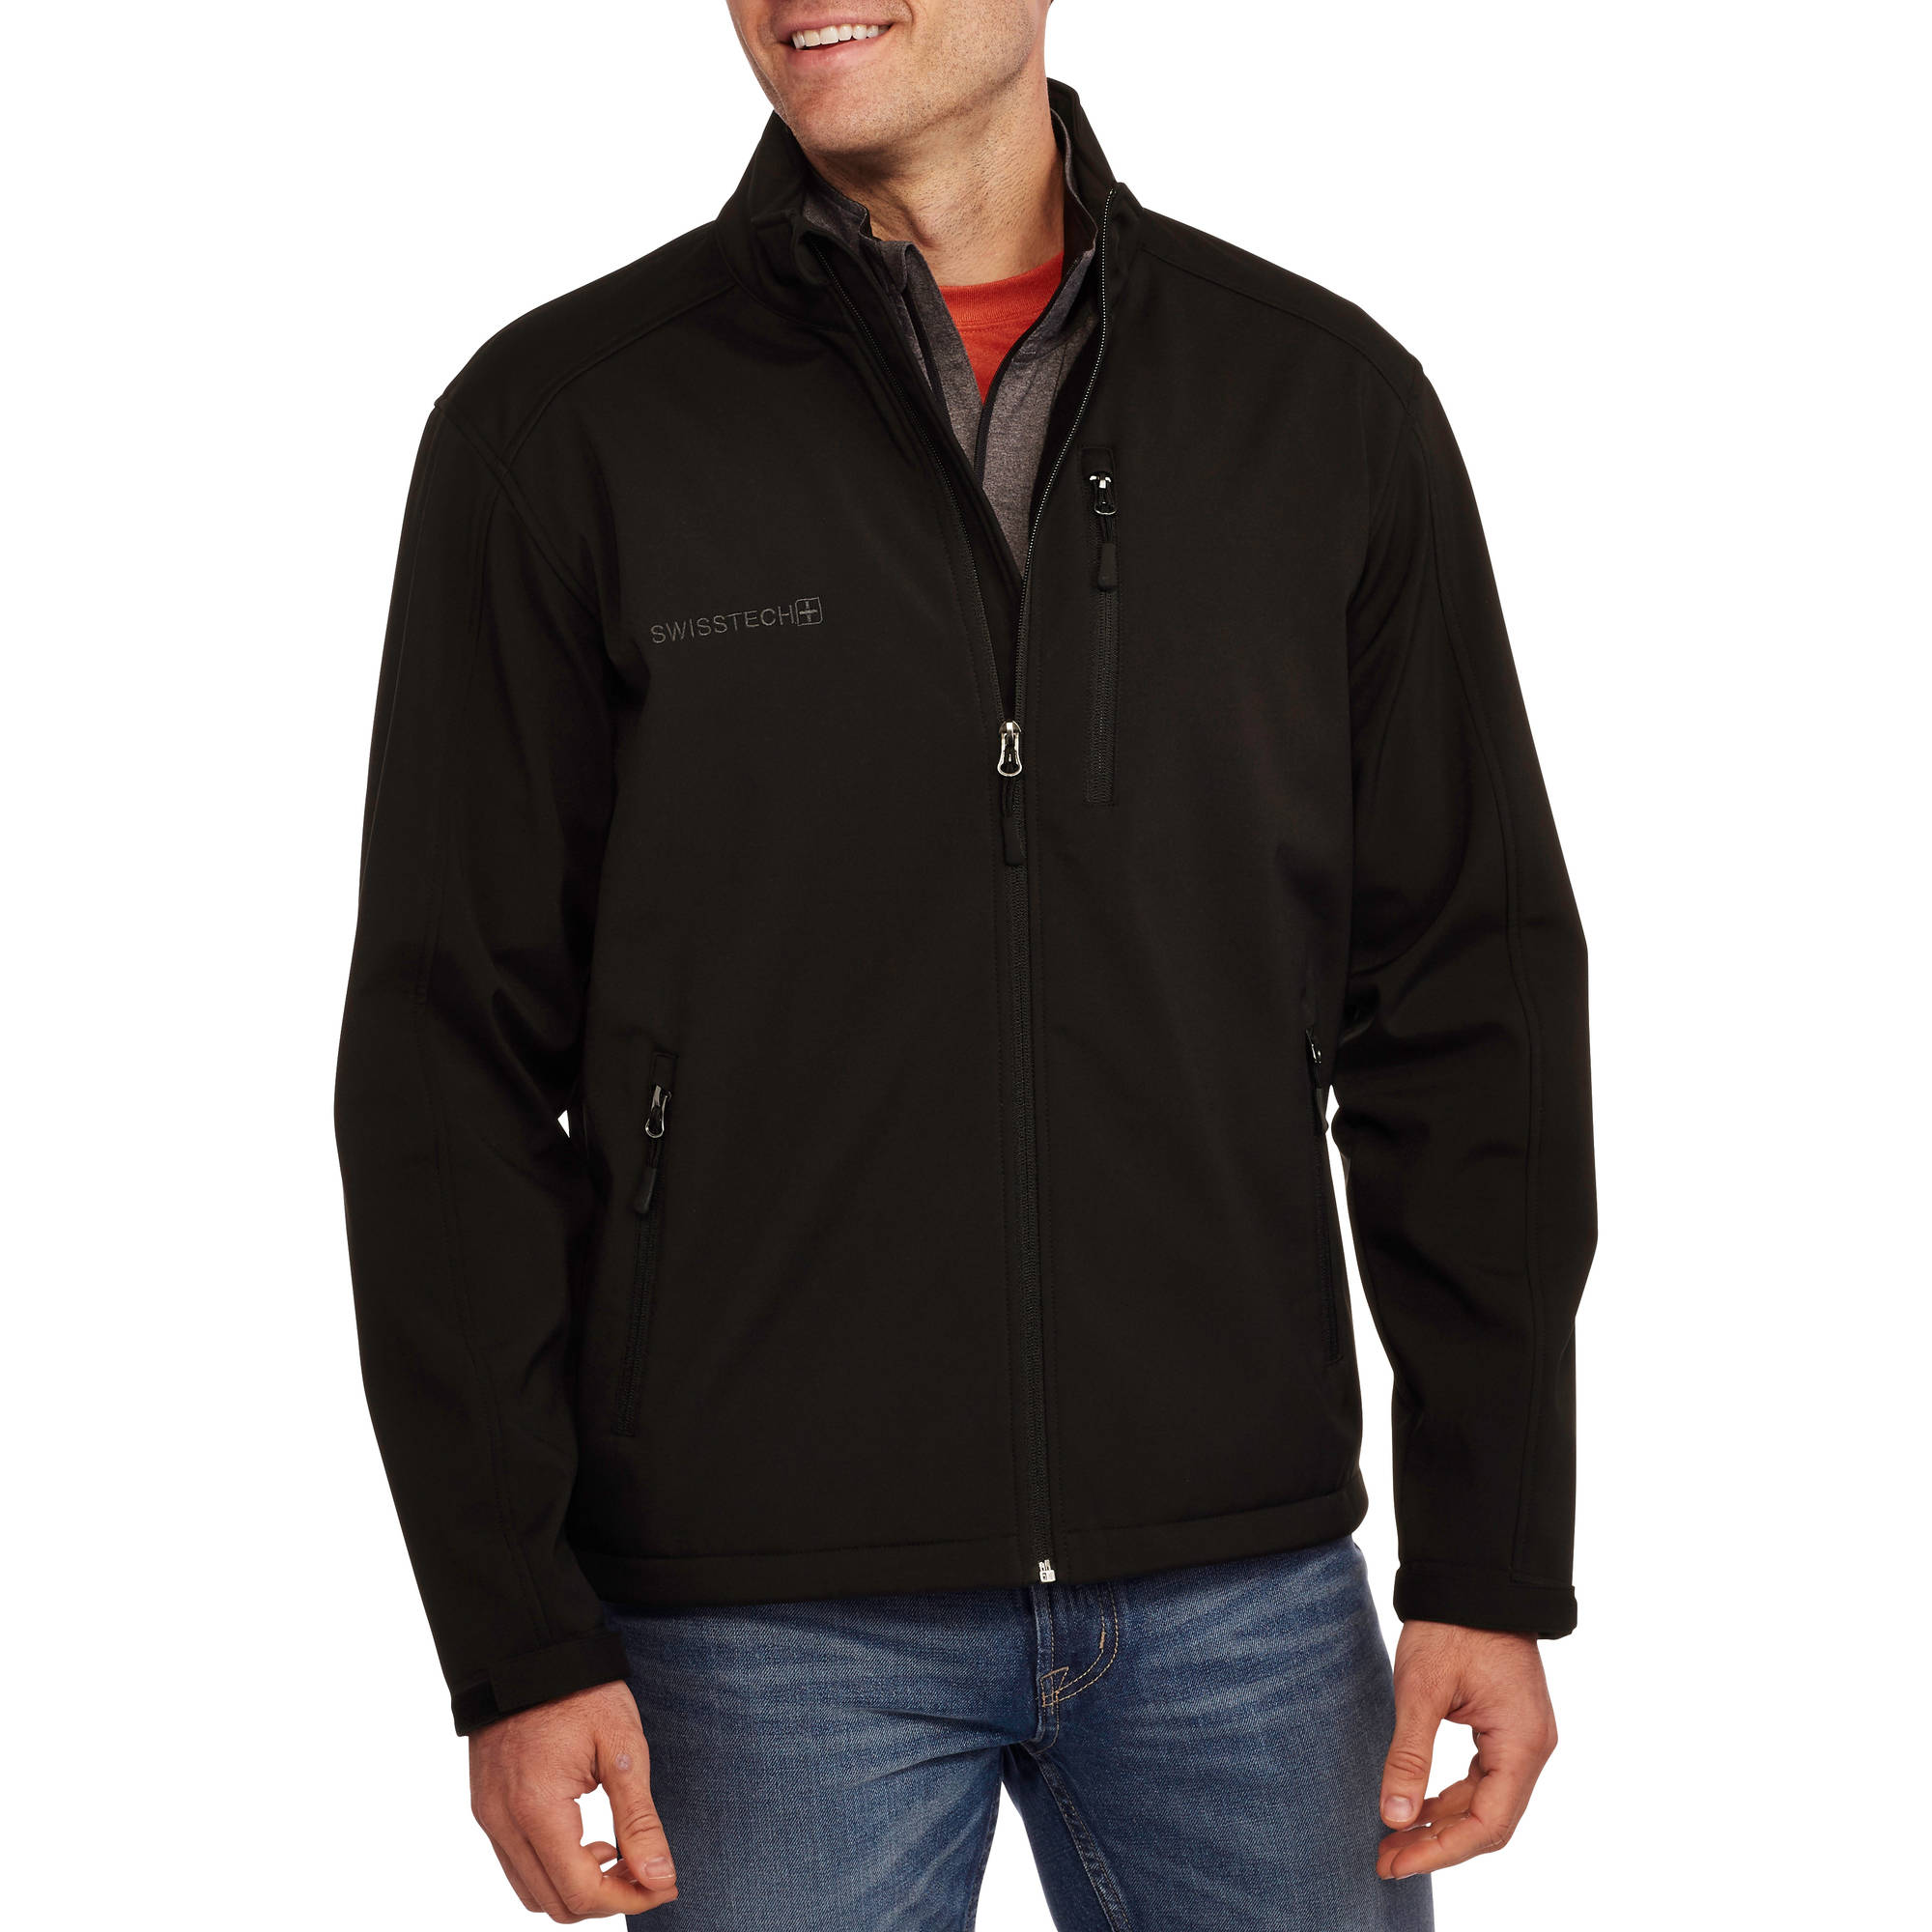 Swiss Tech Men's Softshell Jacket